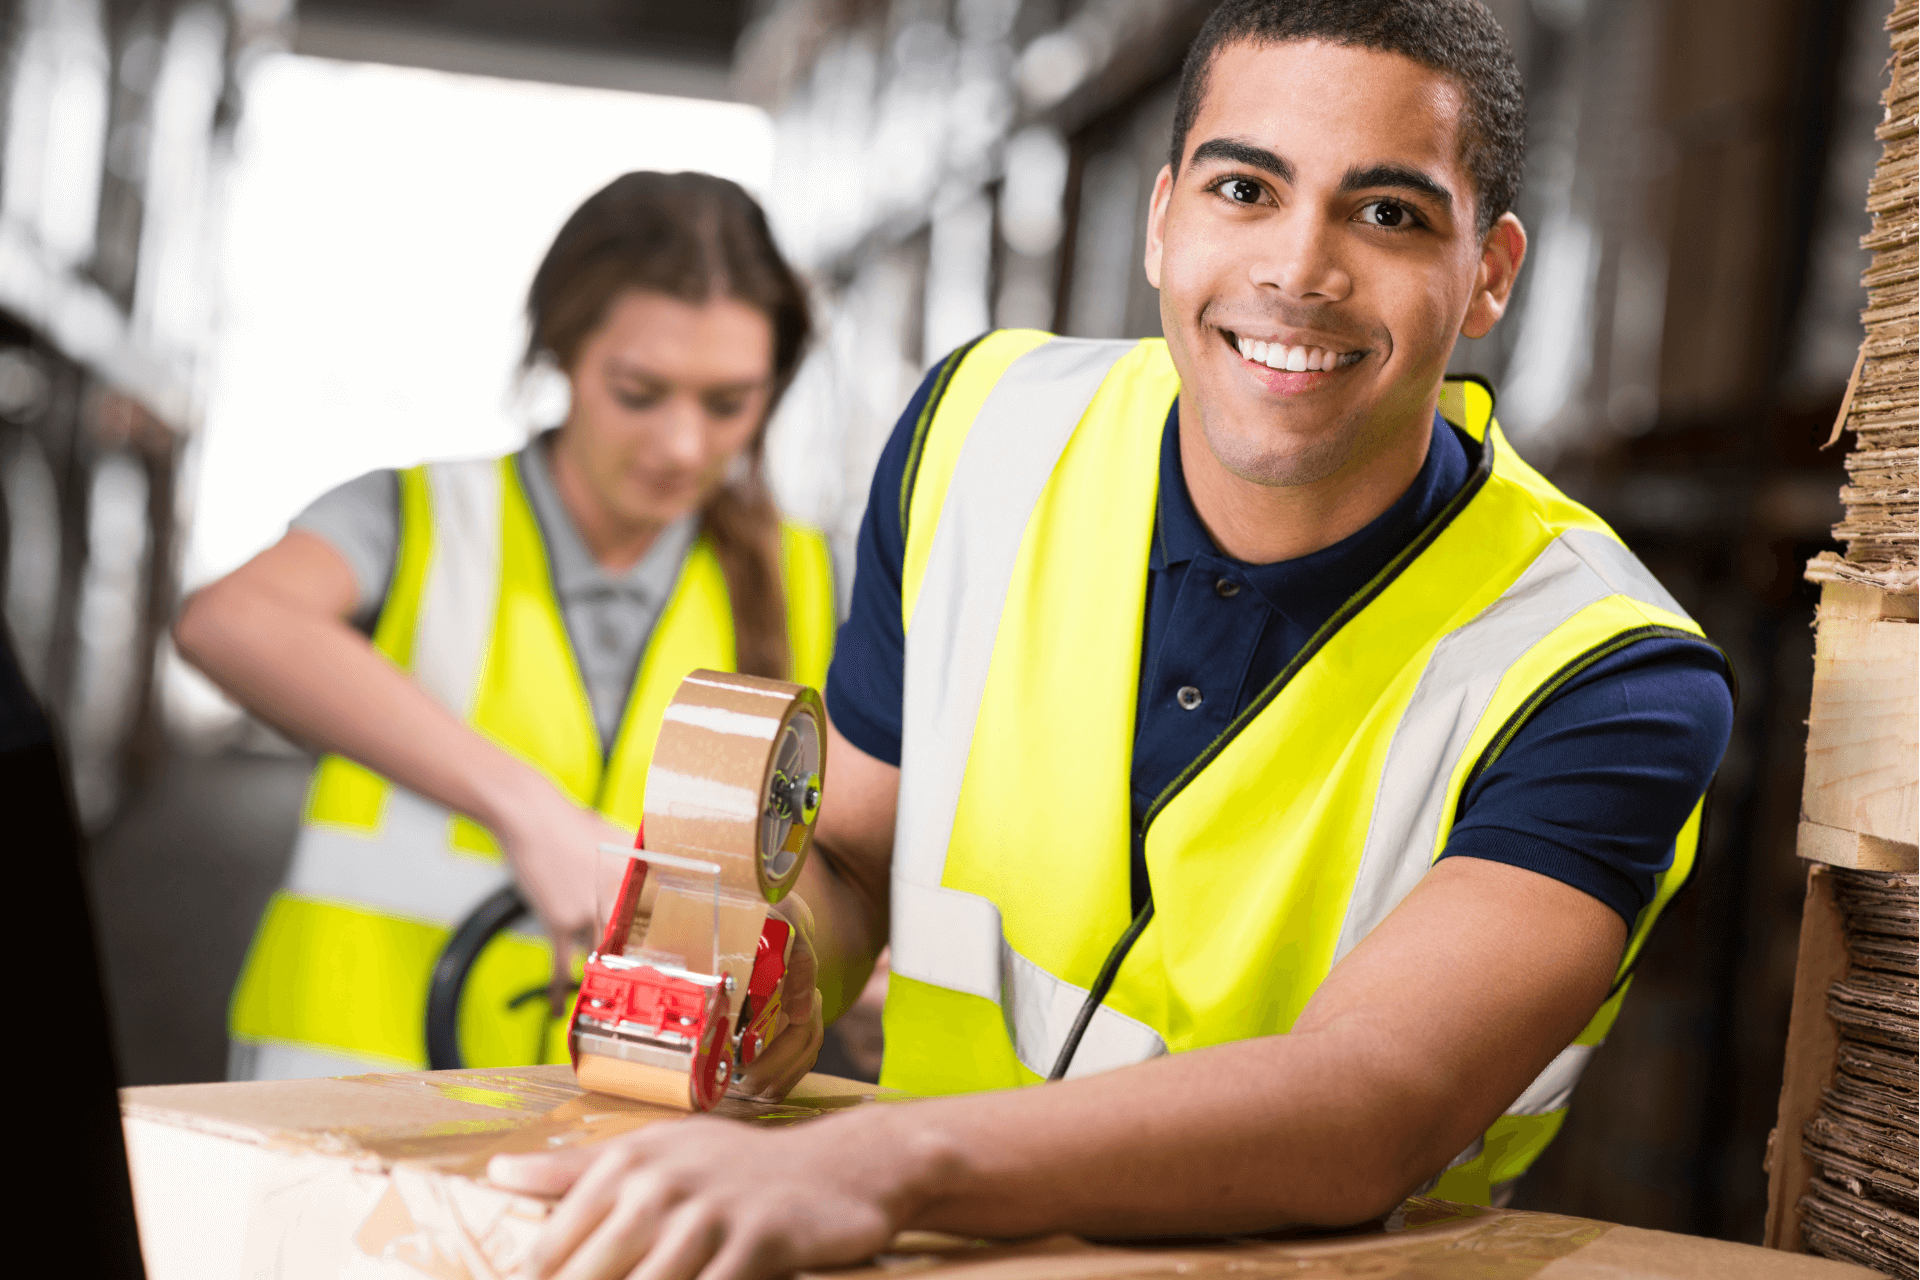 pick and pack, ecommerce fulfilment, 3pl, inventory management